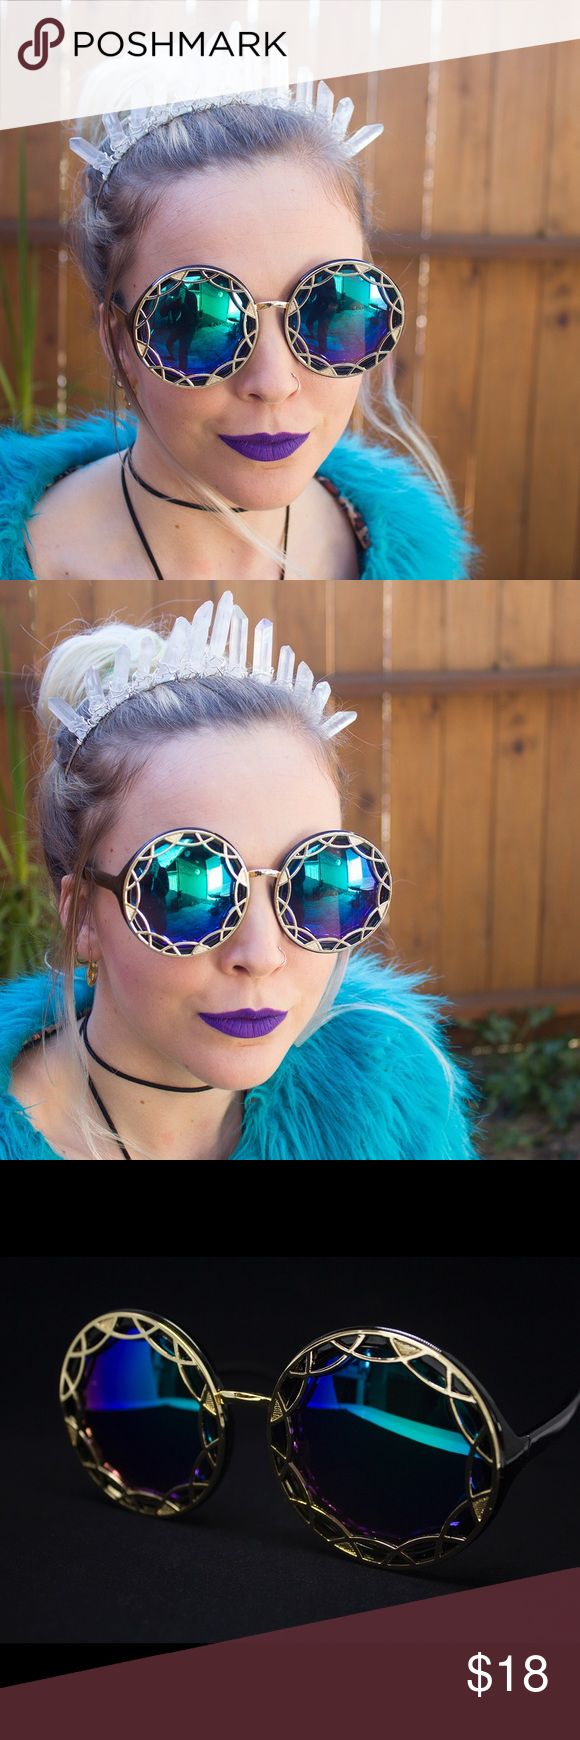 New Color! Blue Green Ornate Round Burner Sunnies Beautiful brand NWT in packaging black oversized round sunglasses with ornate gold geometric detailing and blue/green reflective uv400 lenses. Frames are plastic with metal detail. Absolutely perfect for Coachella or LiB or any festivals you may be going to 💖The lens colors look more green/blue depending on the light. These are super cool!!🌞🌈💕☺️ ask about my 2/$30 bundle deal on sunnies! Check out my other listings for more color options…